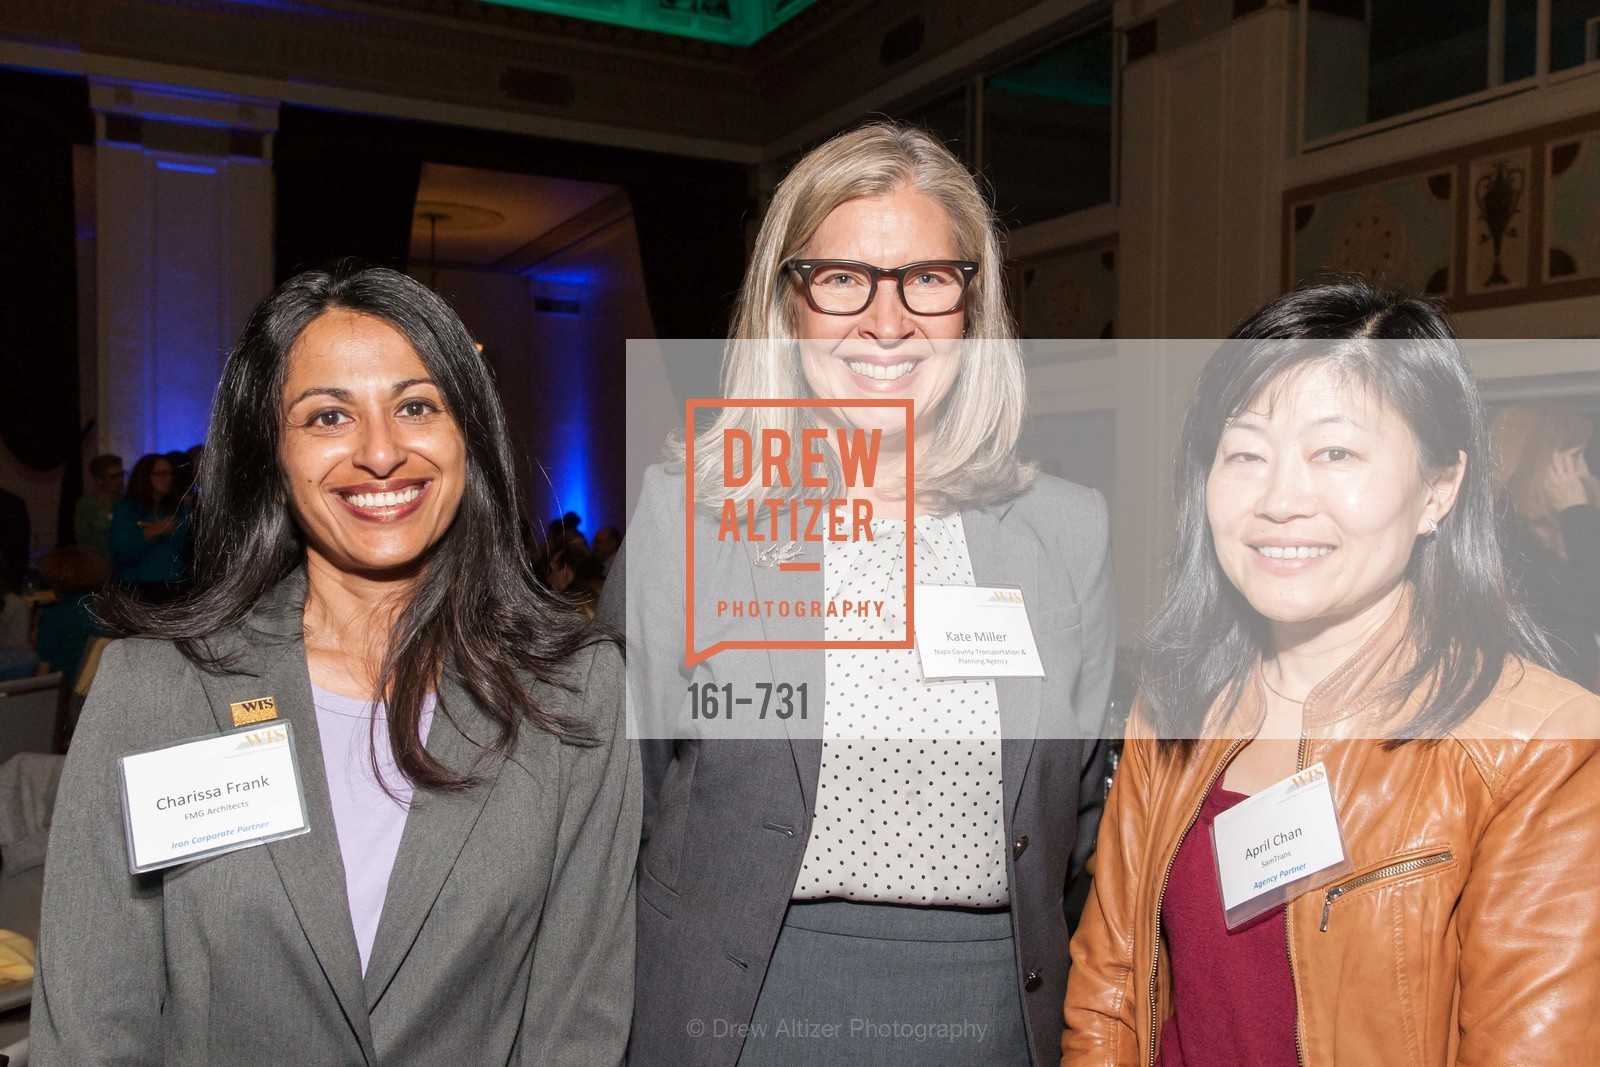 Charisse Frank, Kate Miller, April Chan, WOMEN'S TRANSPORTATION SEMINAR SF Bay Area Chapter Annual Scholarship Awards, US, May 15th, 2015,Drew Altizer, Drew Altizer Photography, full-service agency, private events, San Francisco photographer, photographer california